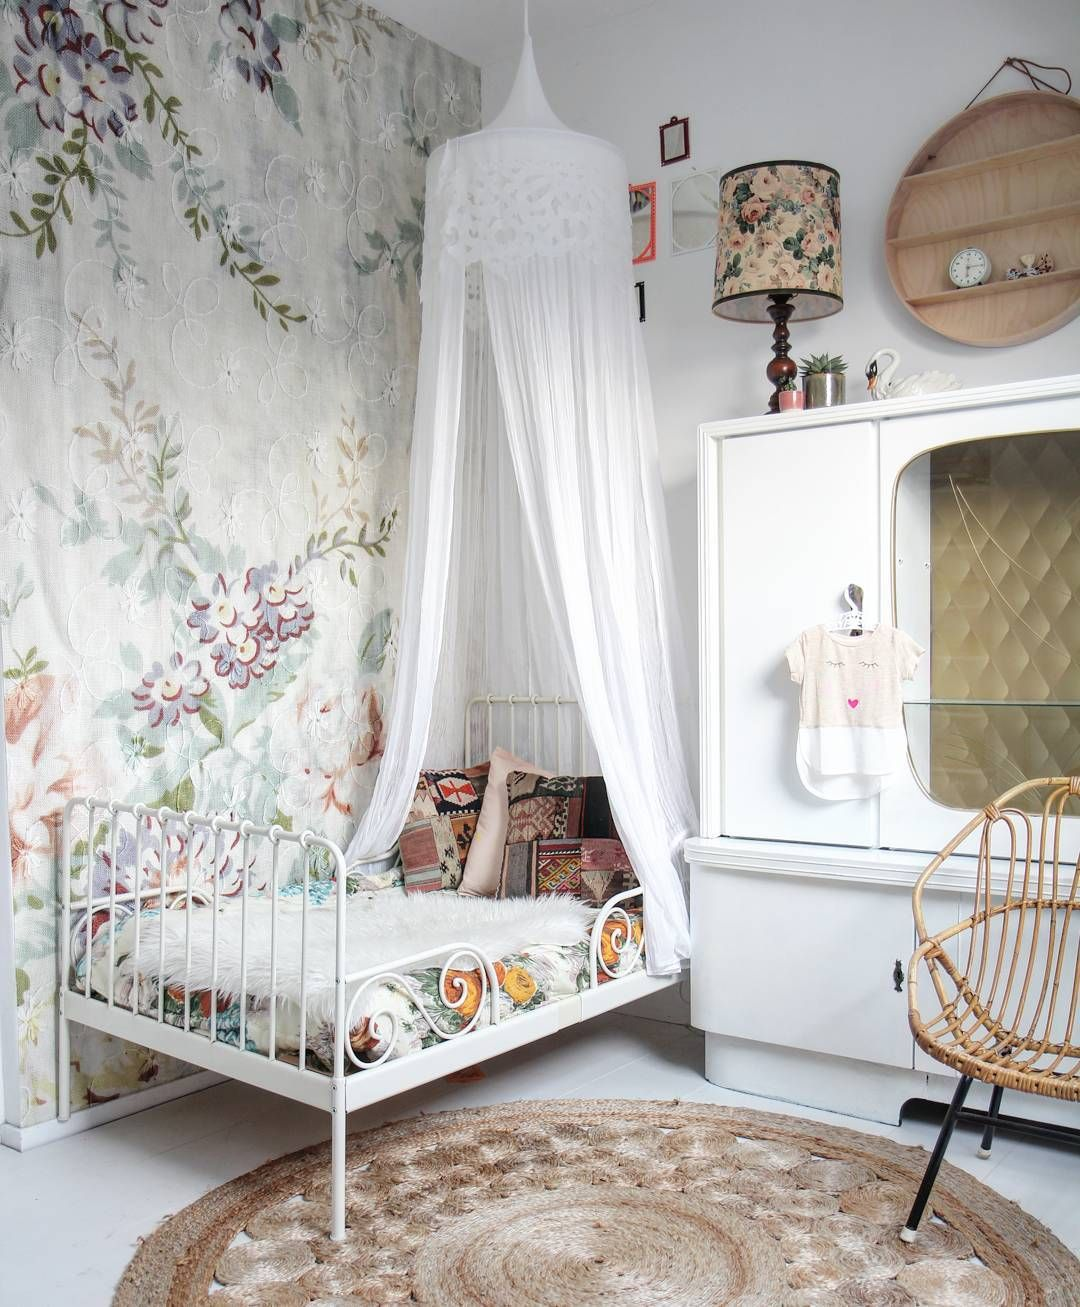 Fleursdamelie on instagram girl baby room pinterest floral